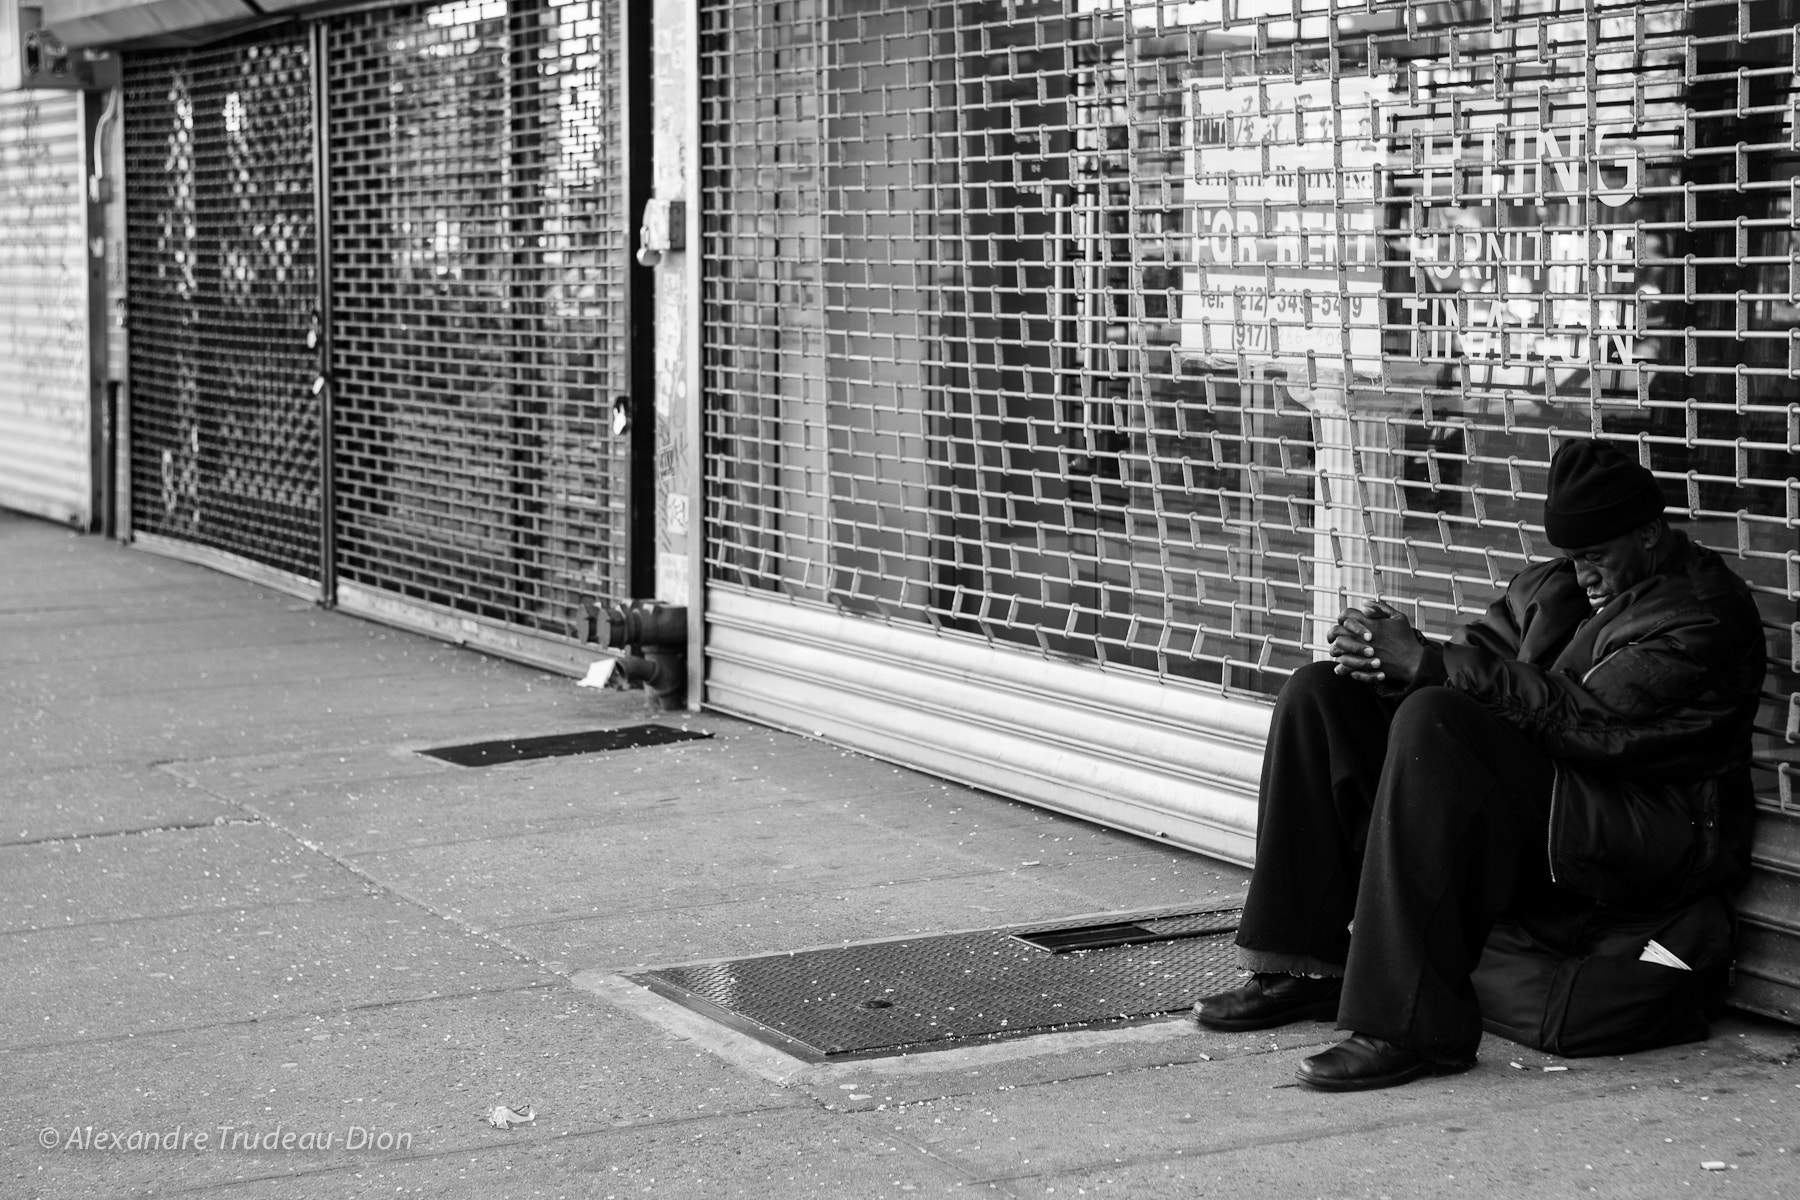 Photograph Waiting by Alexandre Trudeau-Dion on 500px